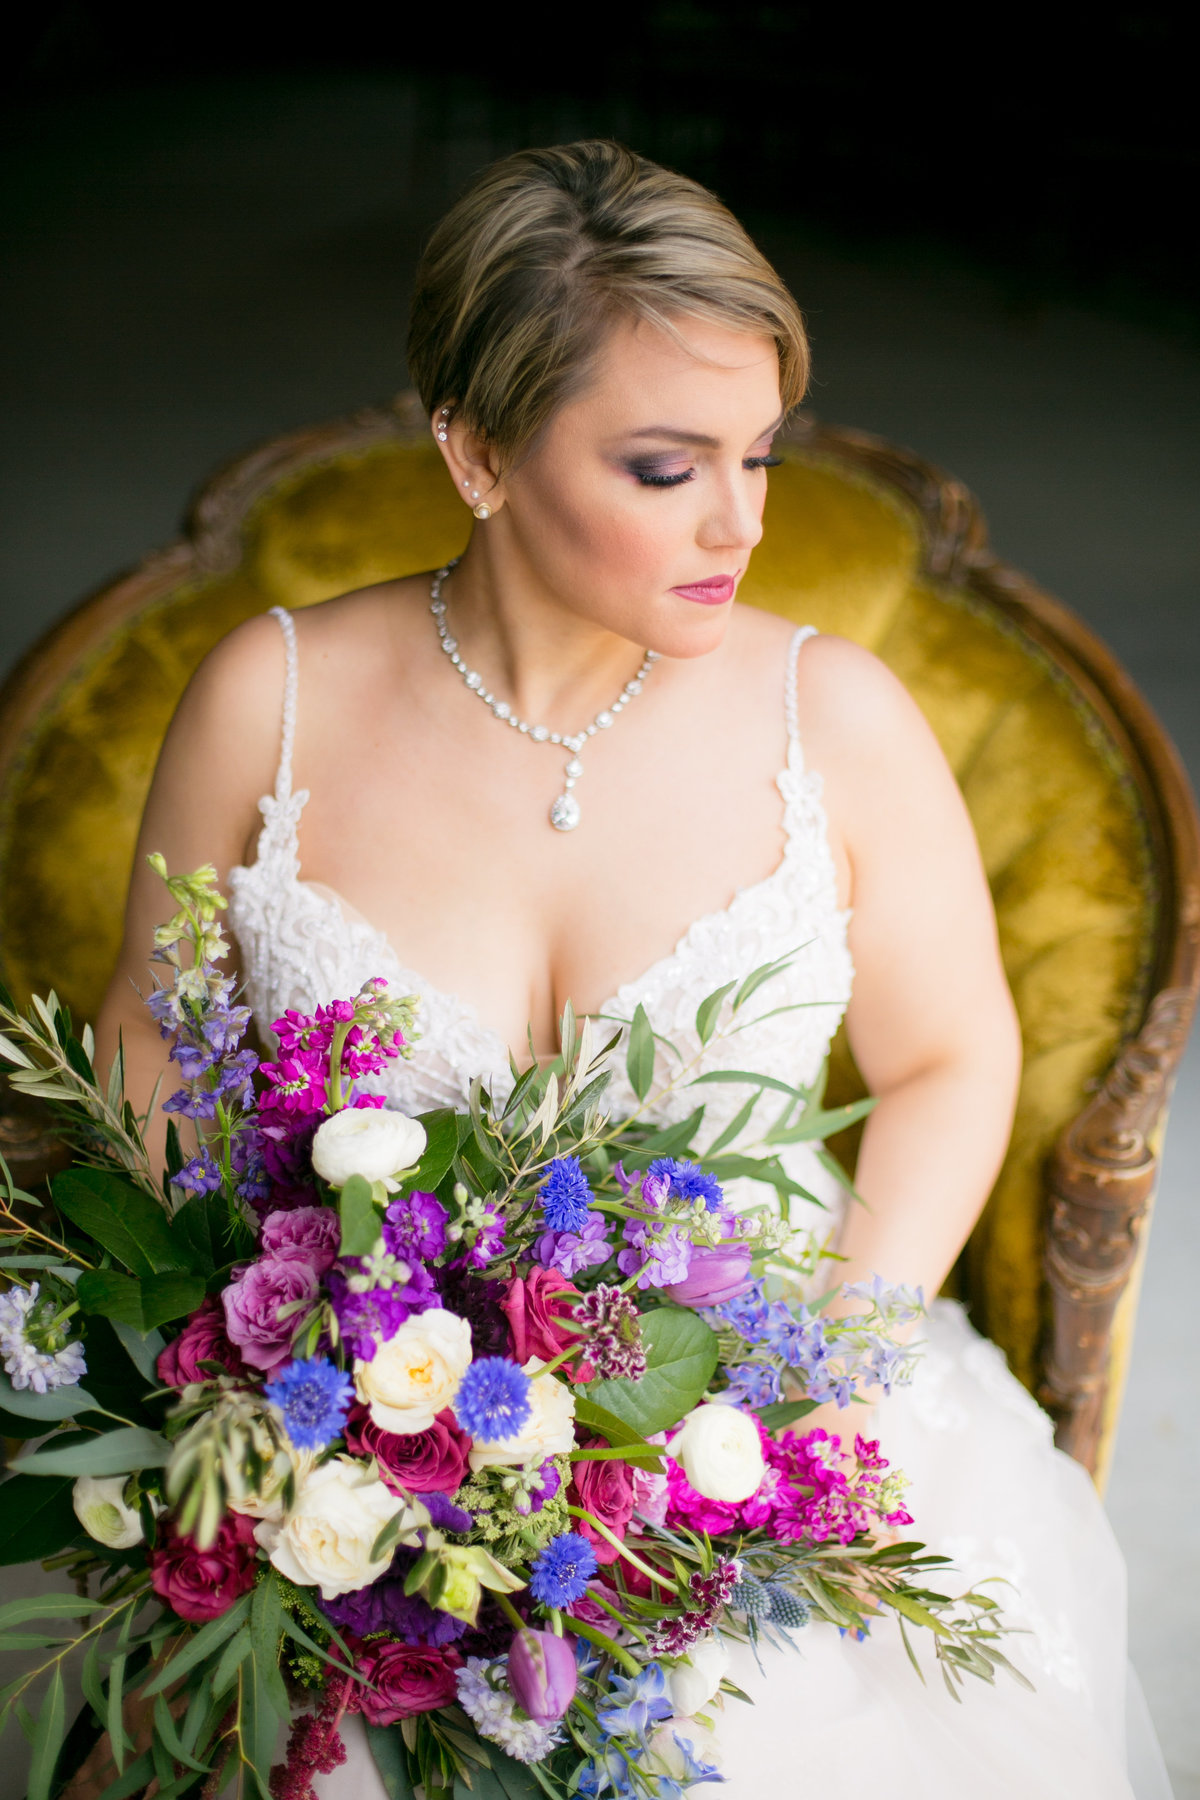 Rachel_Girouard_Photography_Styled_Shoot-309